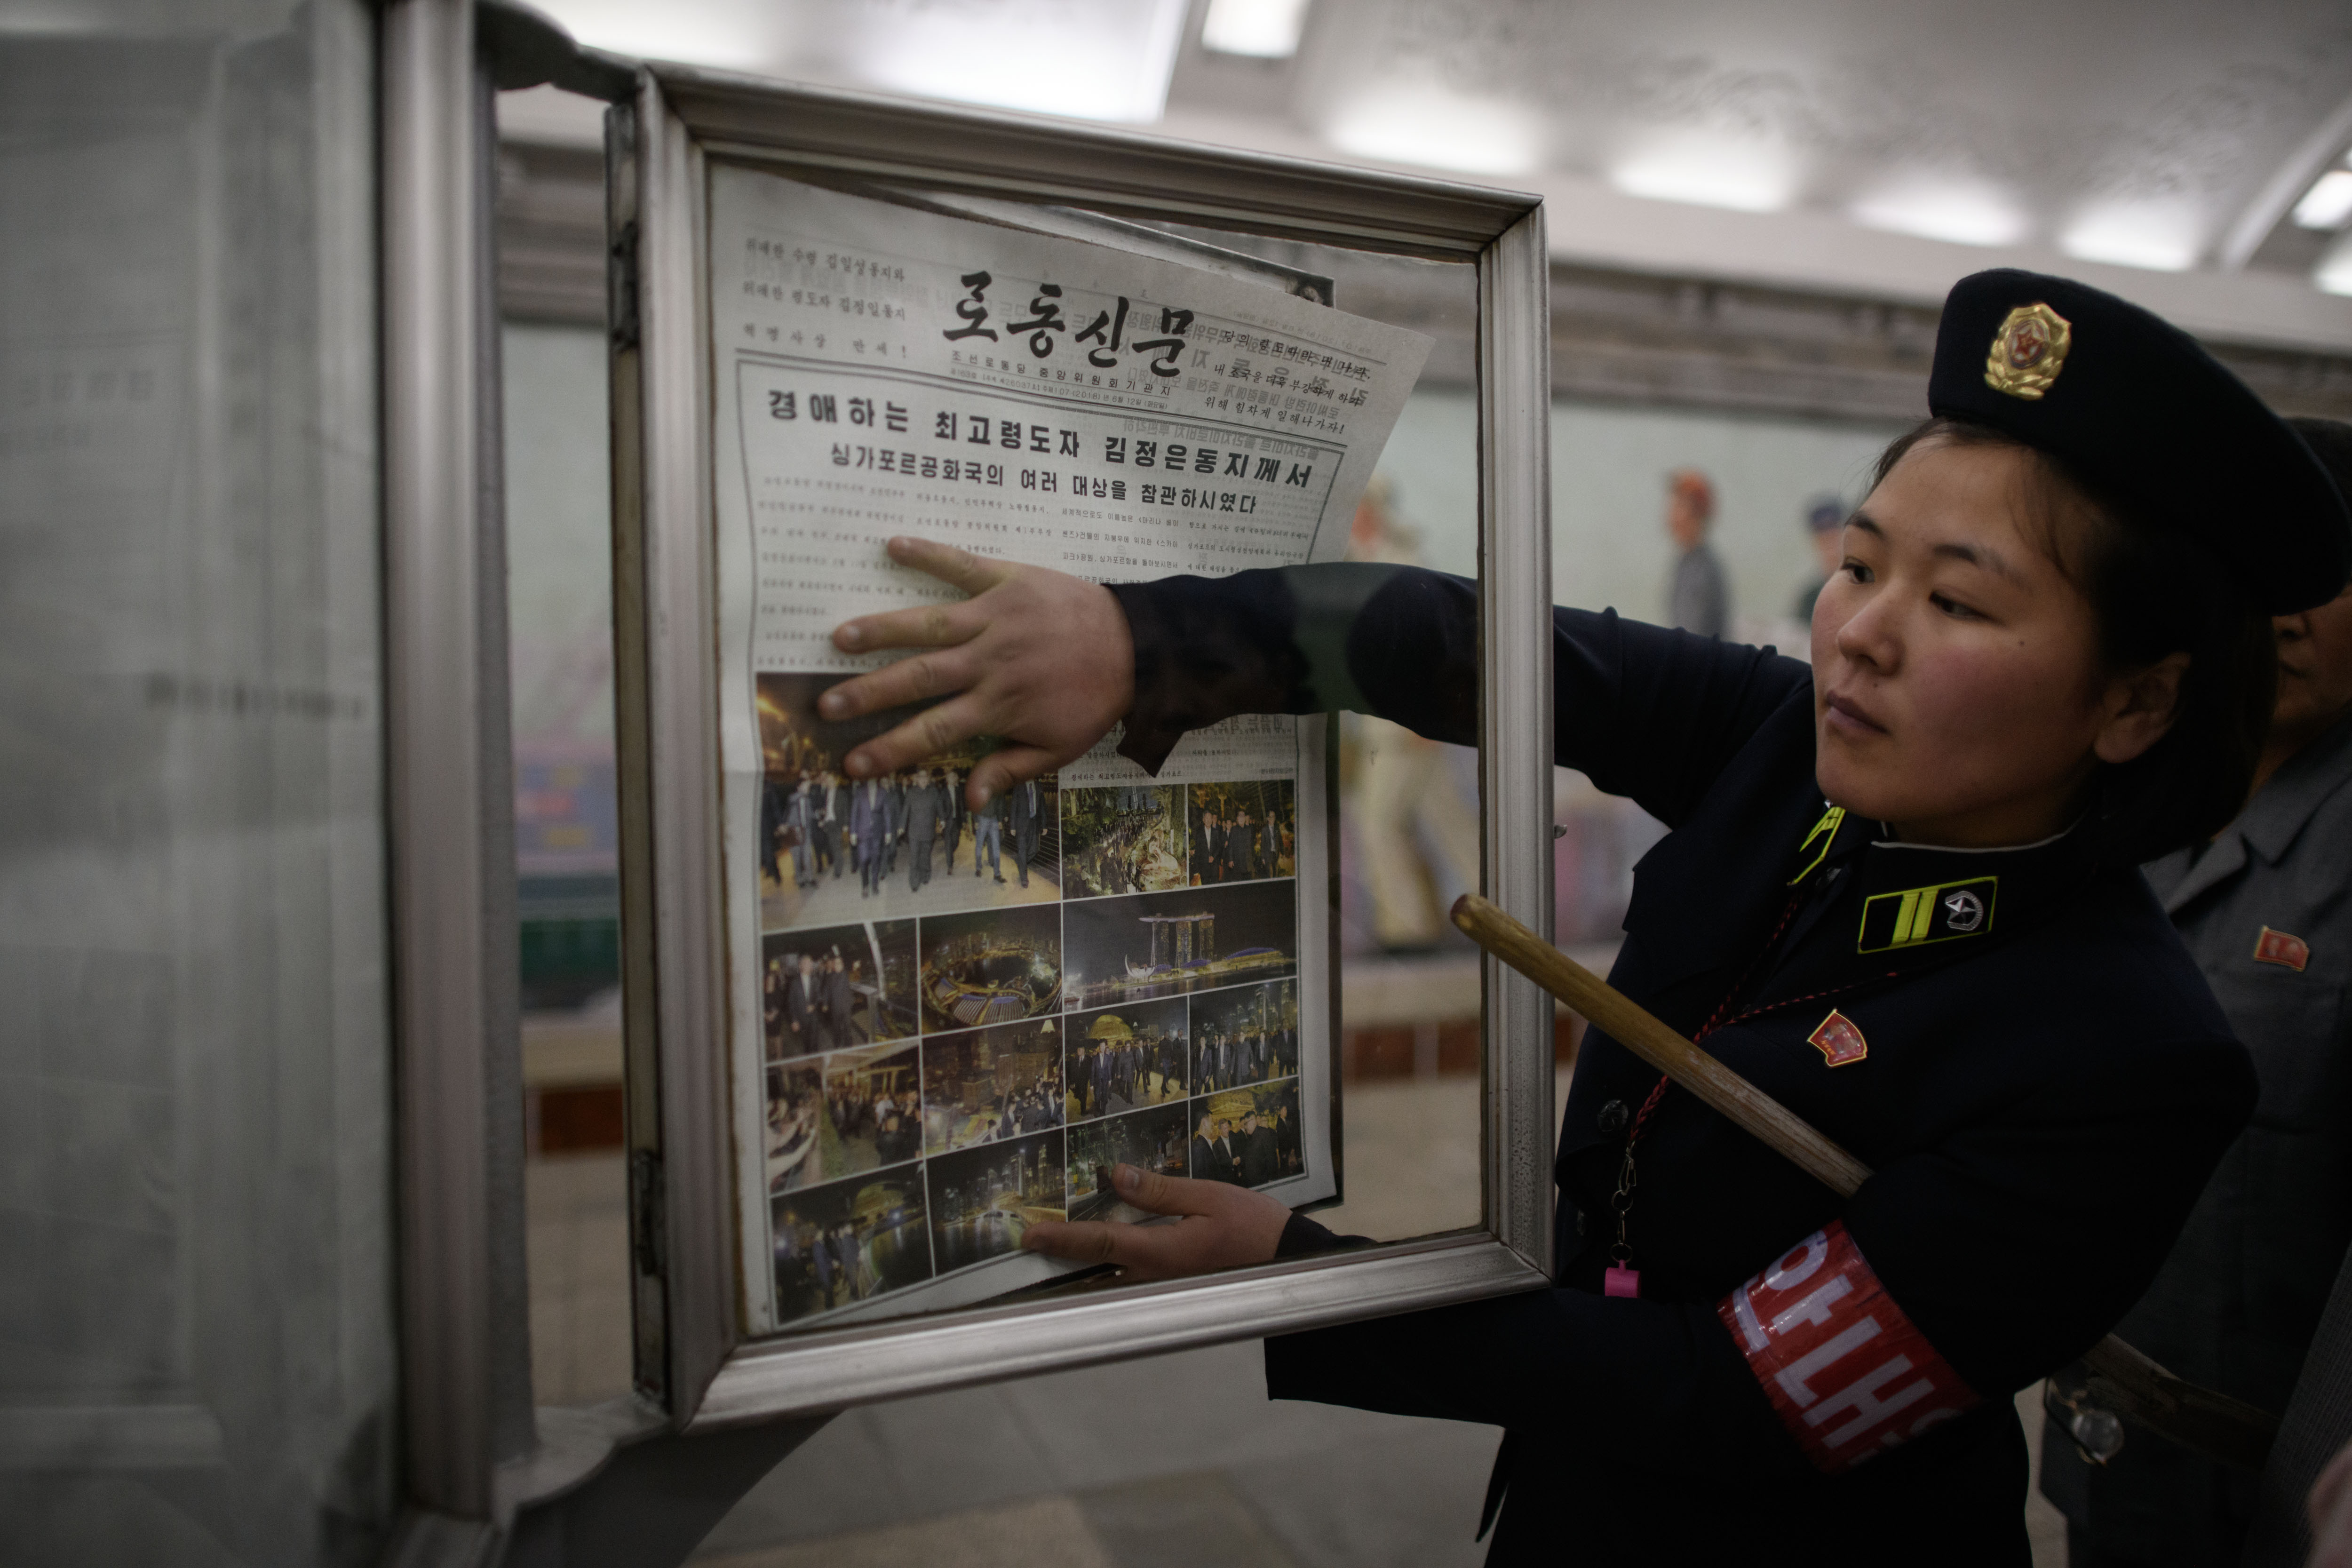 A conductor changes the newspaper to the latest edition showing images of North Korean leader Kim Jong Un in Singapore, at a news stand on a subway platform of the Pyongyang metro on June 12.